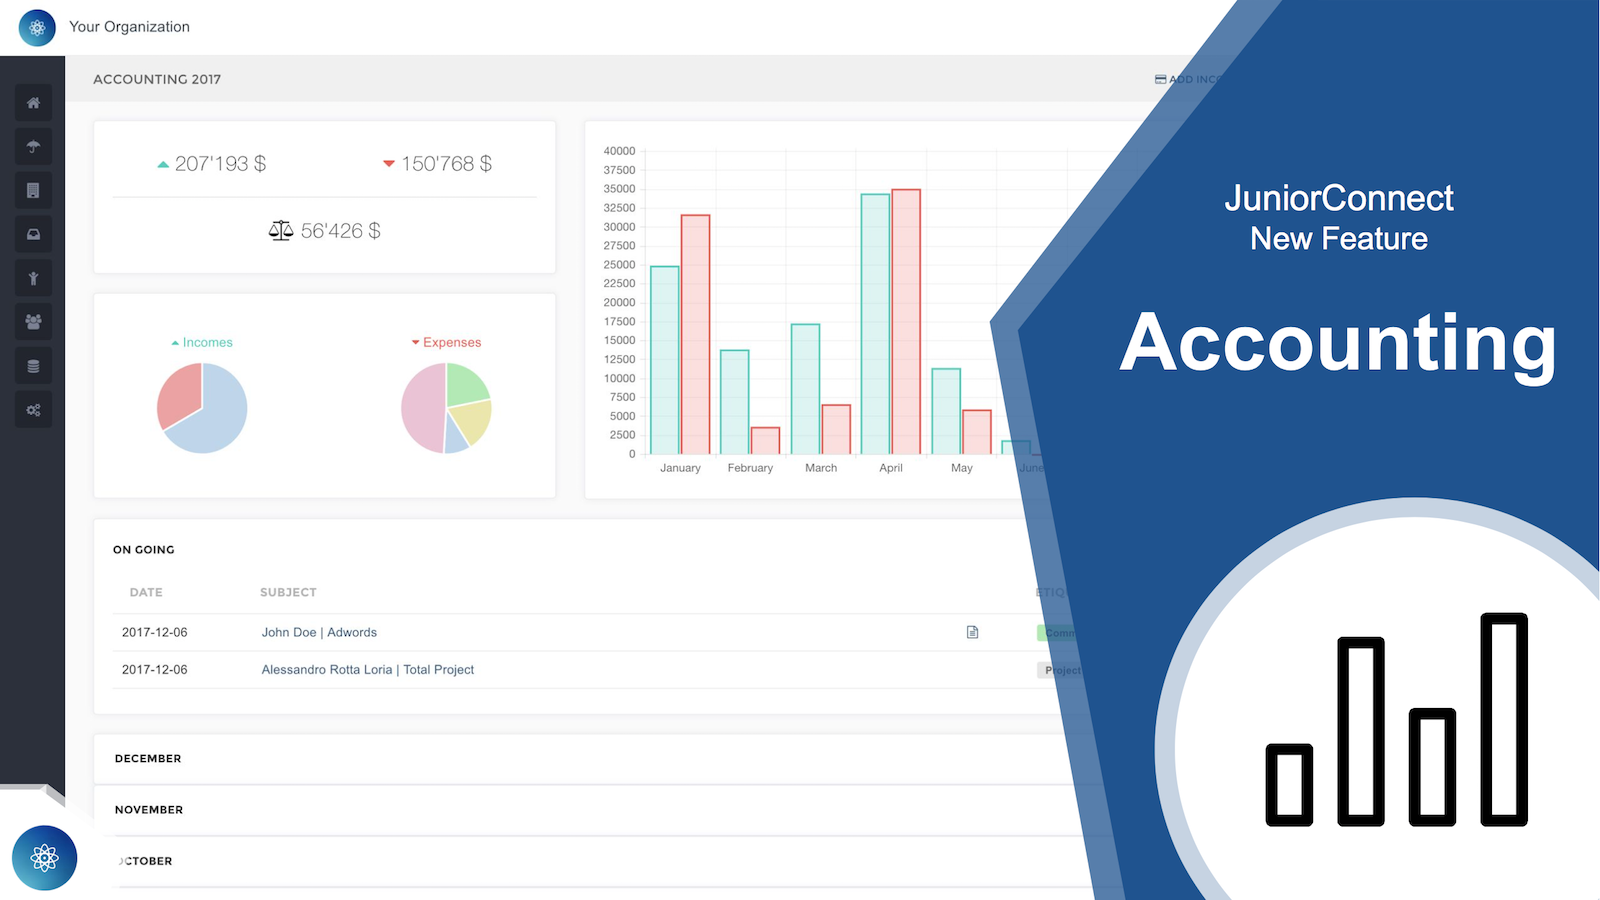 With JuniorConnect, accounting within your organization gets clearer